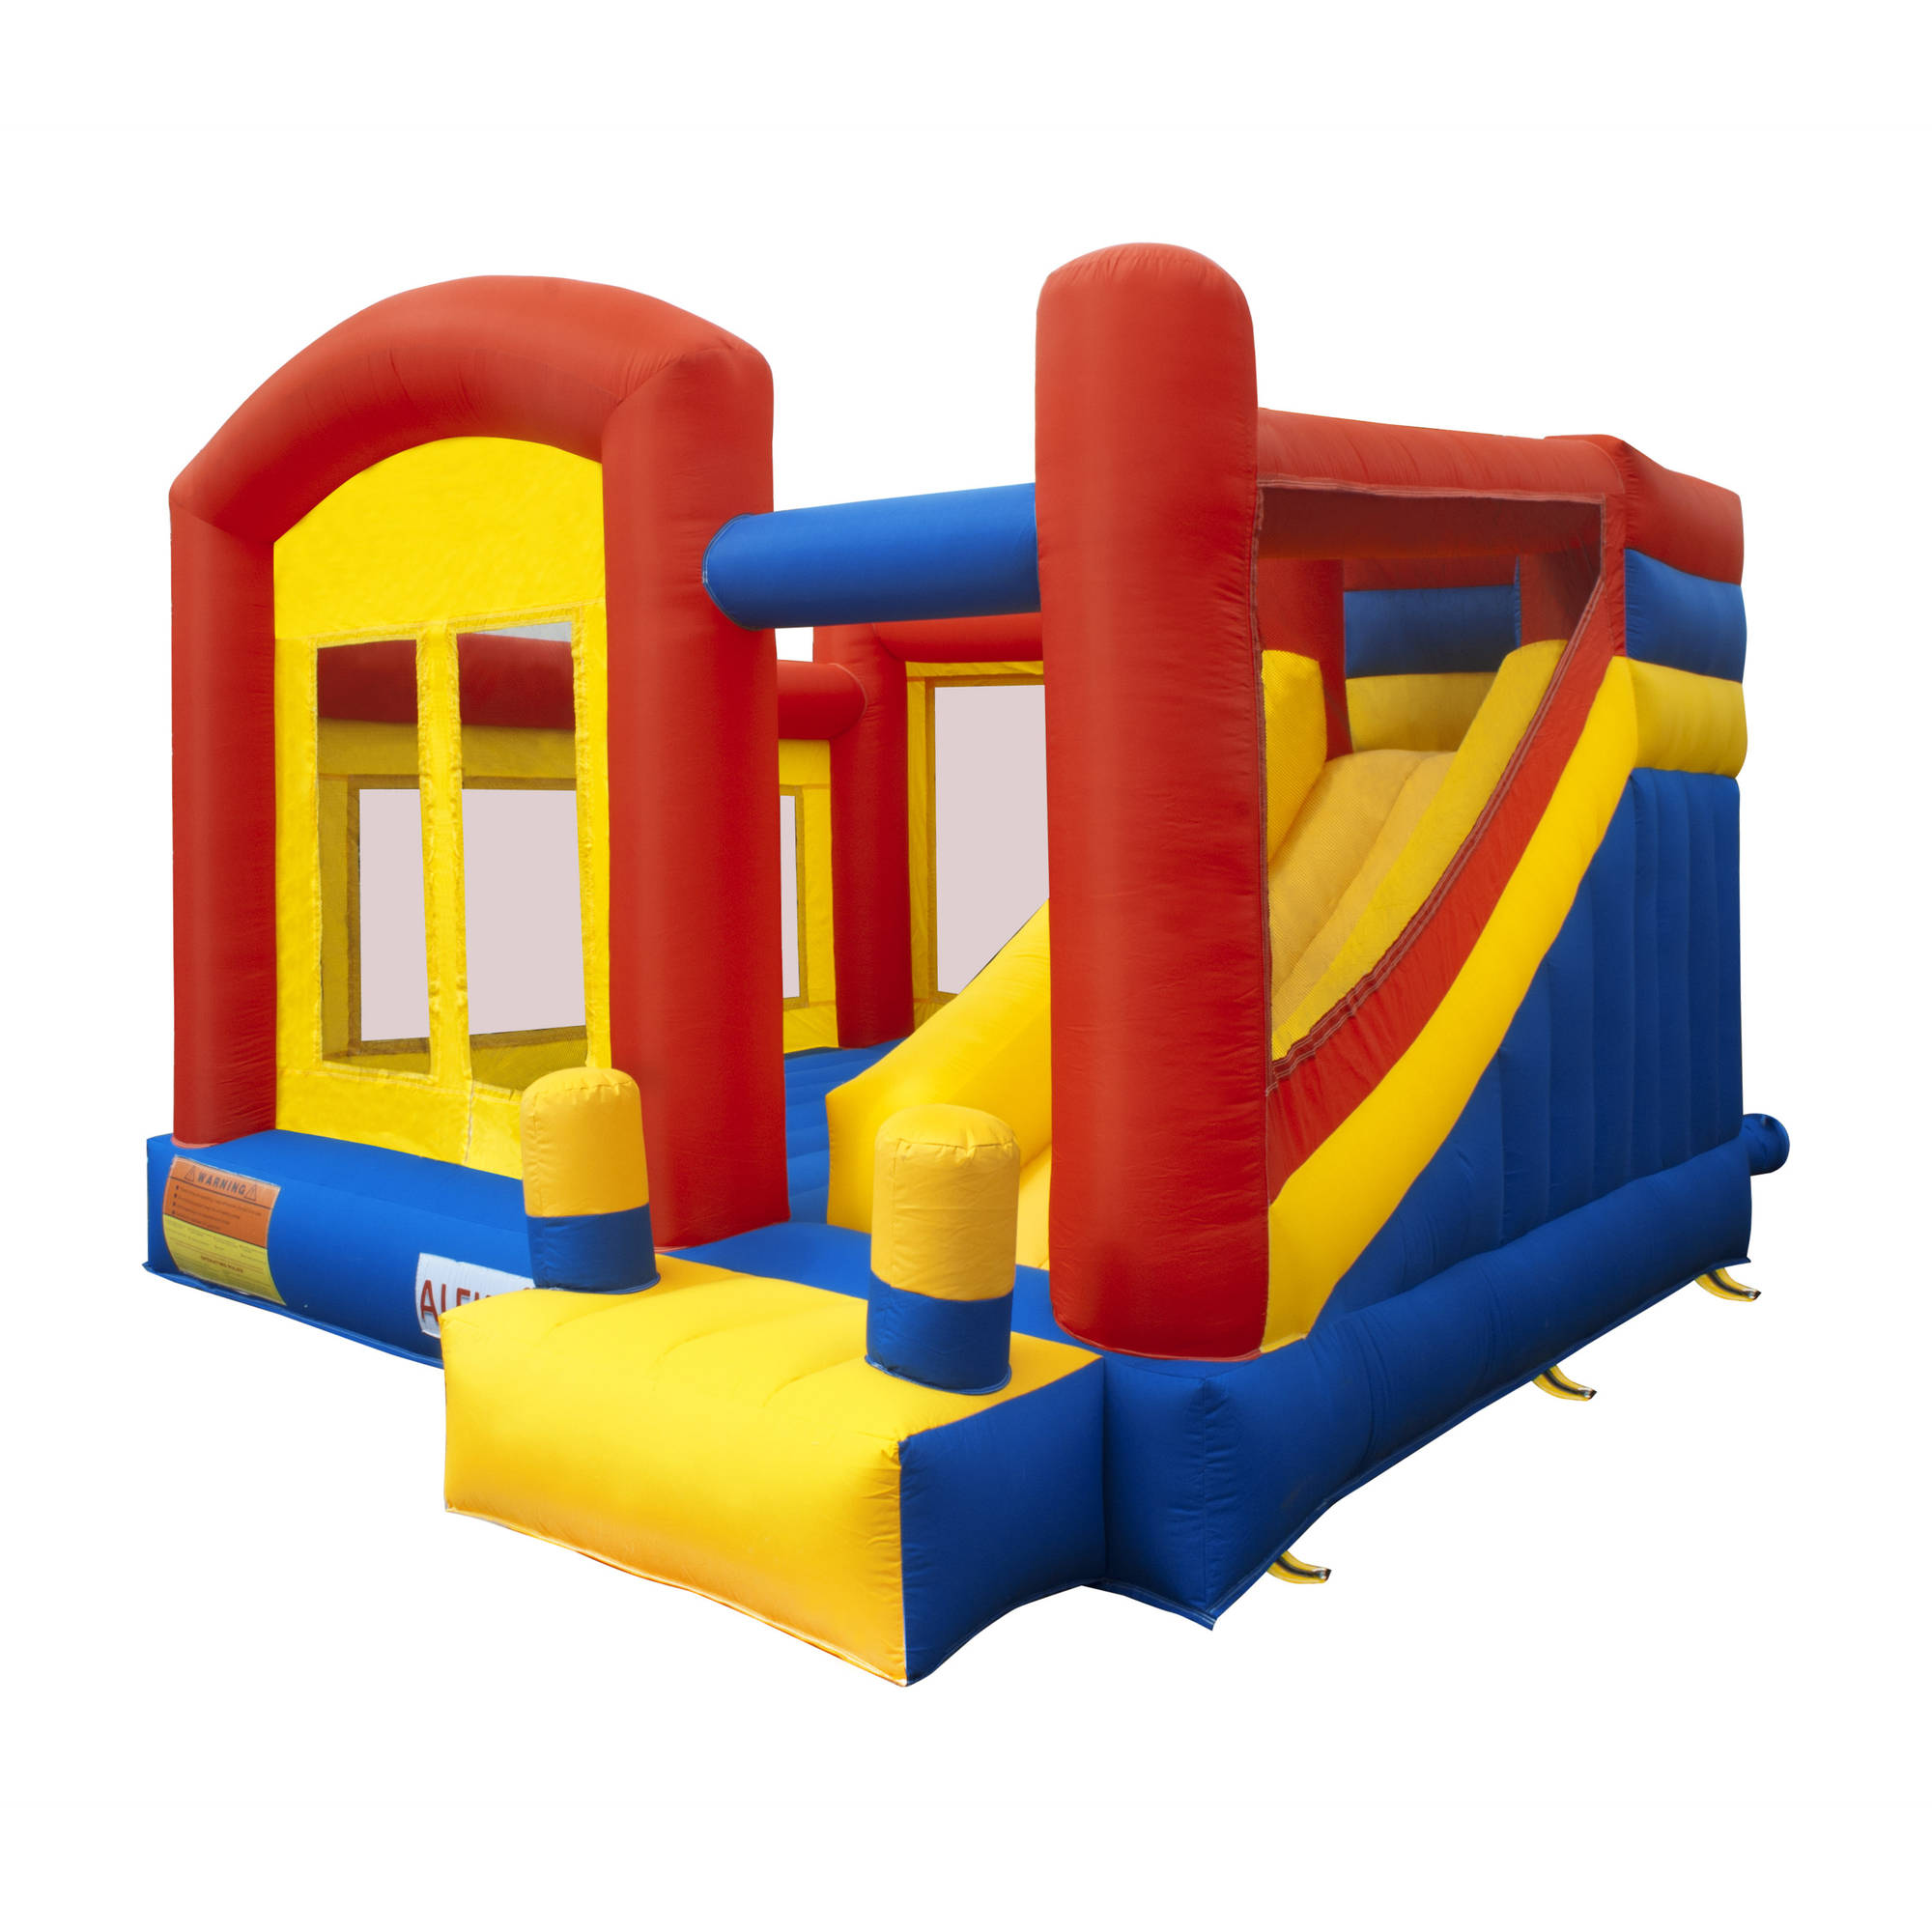 ALEKO Commercial Inflatable Playground Bounce House with Slide and Blower 13' x 12' x 9' by ALEKO